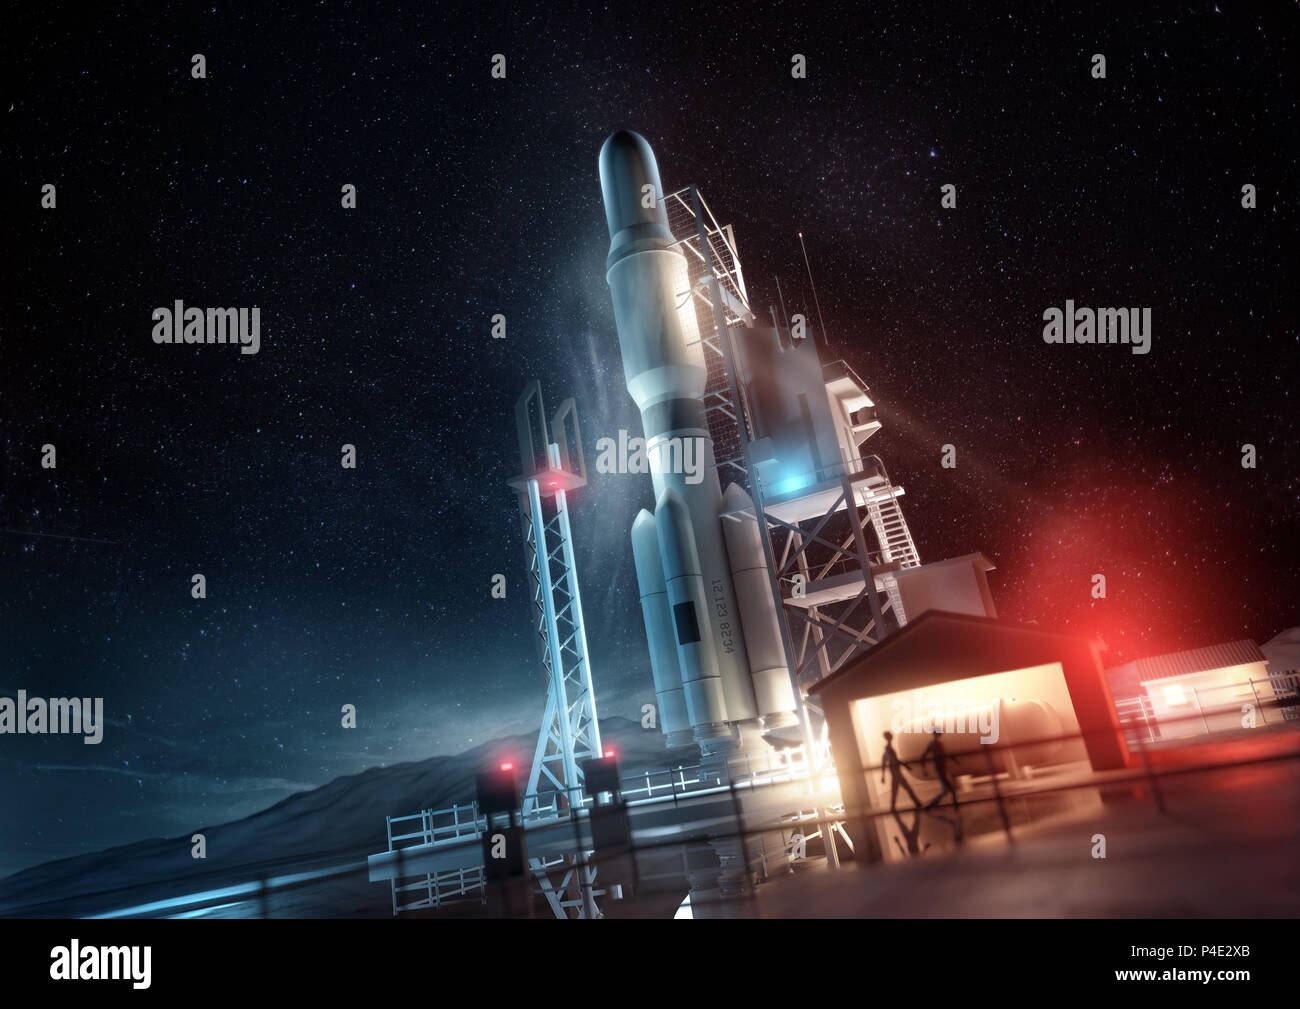 A large space rocket ready for launch at night. 3D illustration concept. - Stock Image